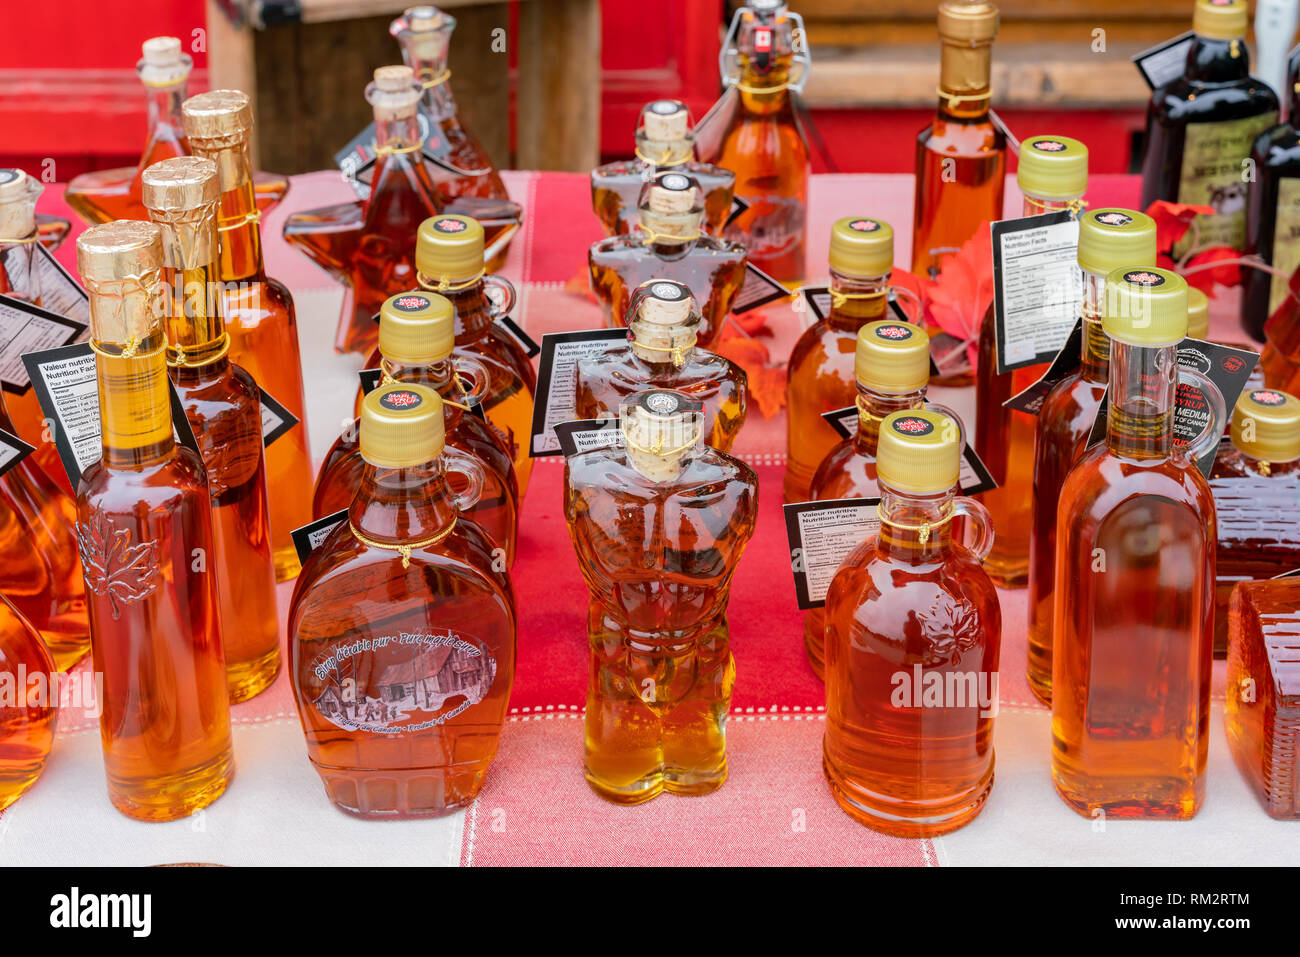 Montreal, OCT 3: Close up shot of many bottle of maple syrup on OCT 3, 2018 at Montreal, Quebec, Canada - Stock Image